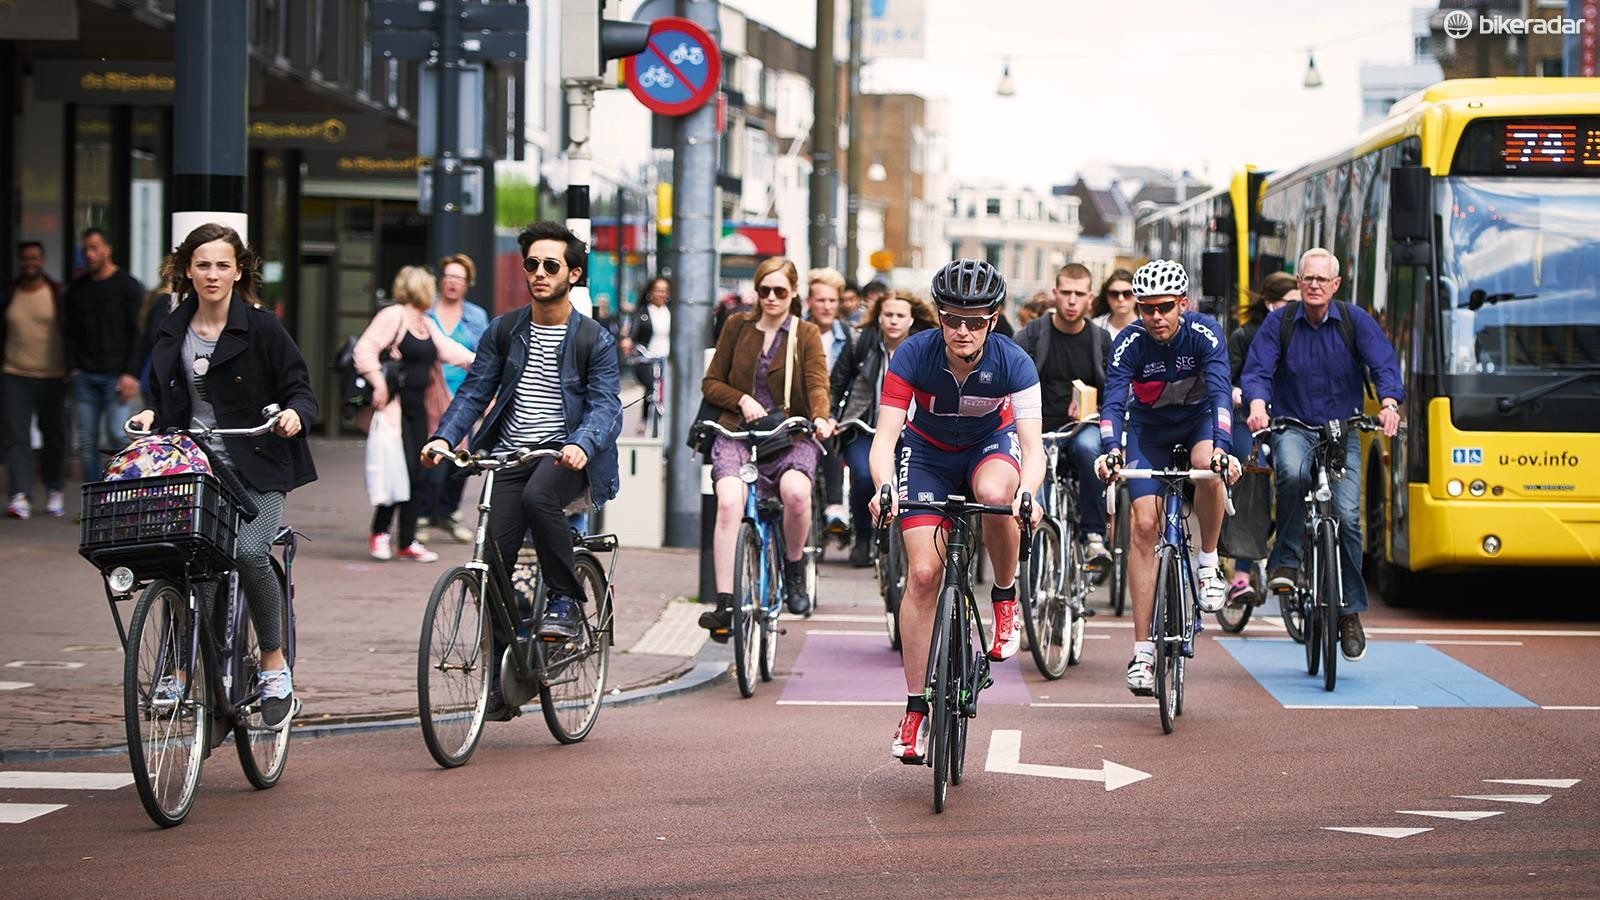 Many argue that it's attitudes and infrastructure that need to change rather than the law on wearing a helmet and often cite the Netherlands as an example